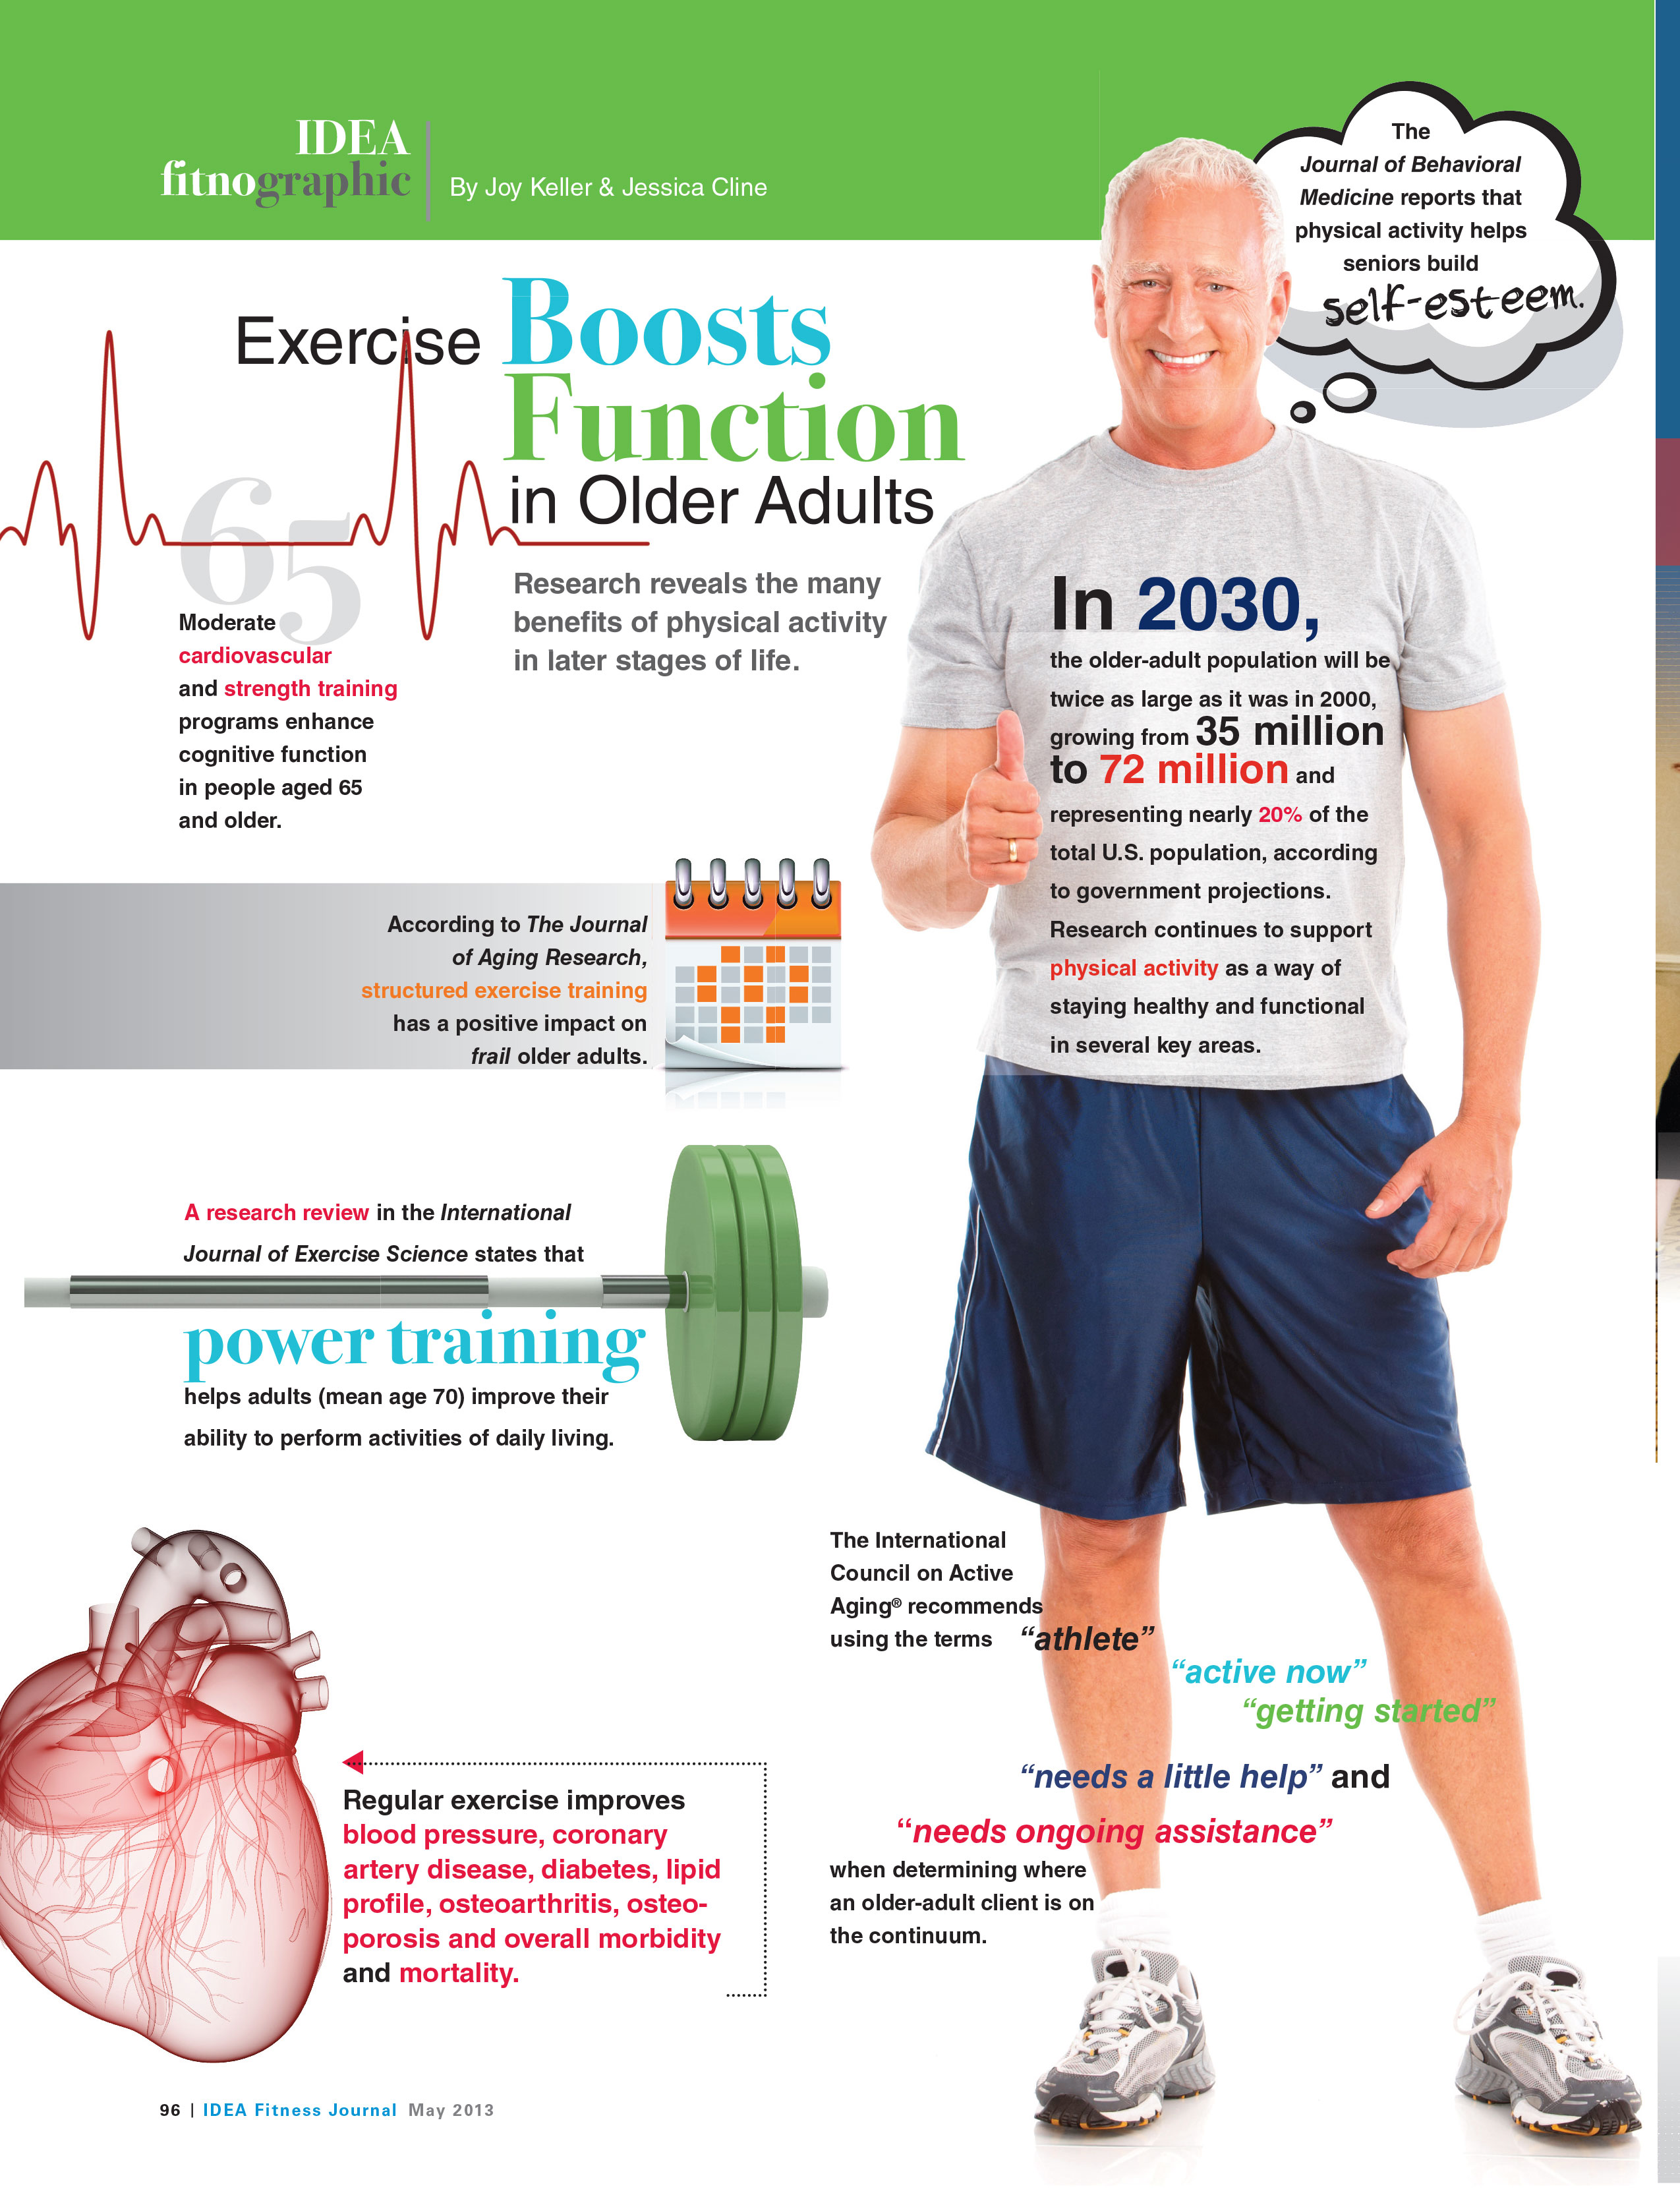 Exercise Boosts Function In Older Adults